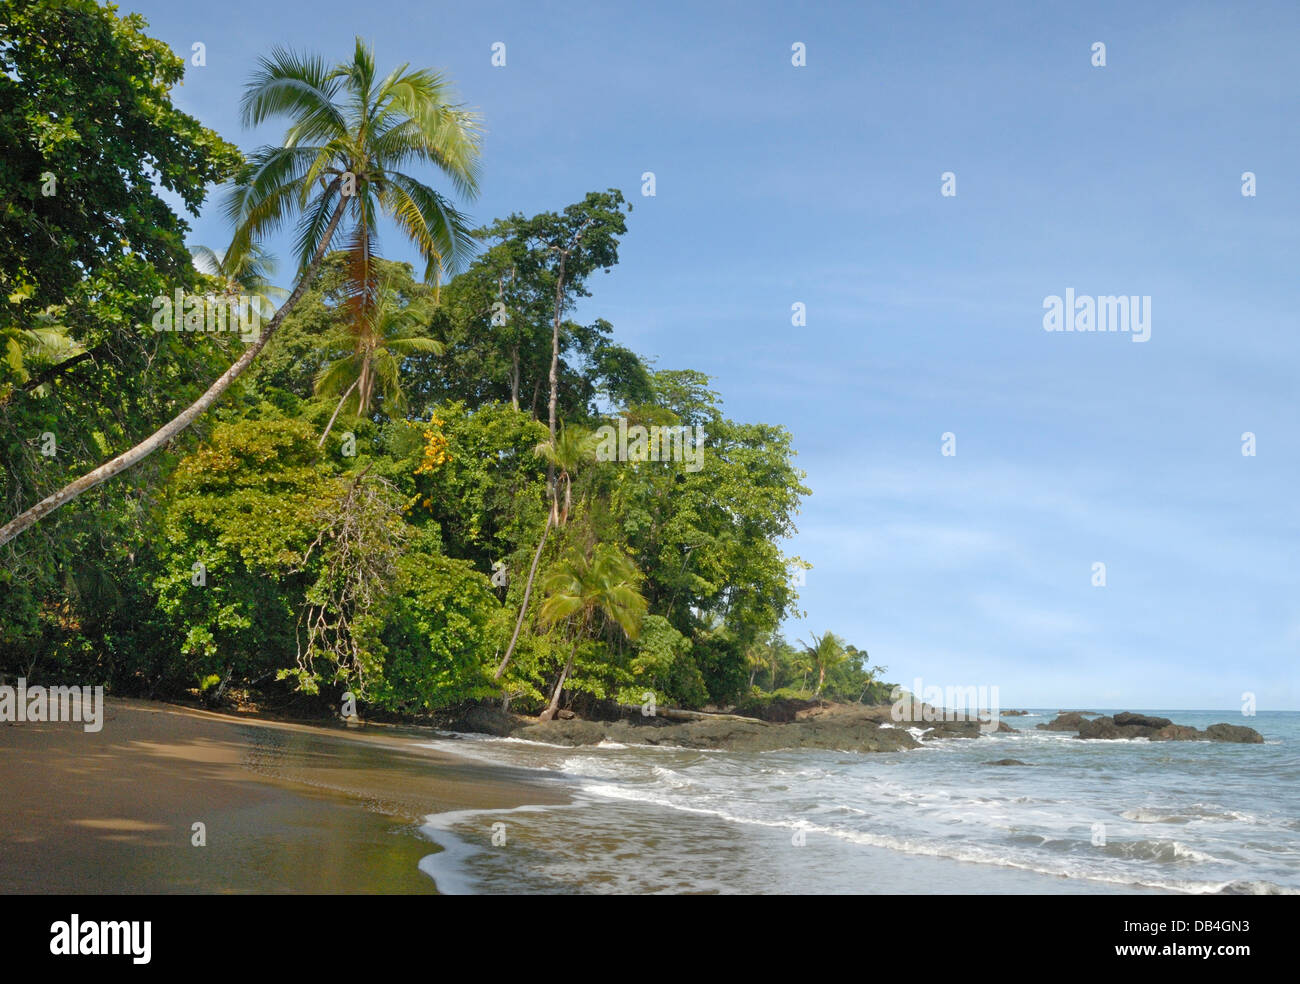 Tropical Beach in Corcovado National Park, Costa Rica - Stock Image